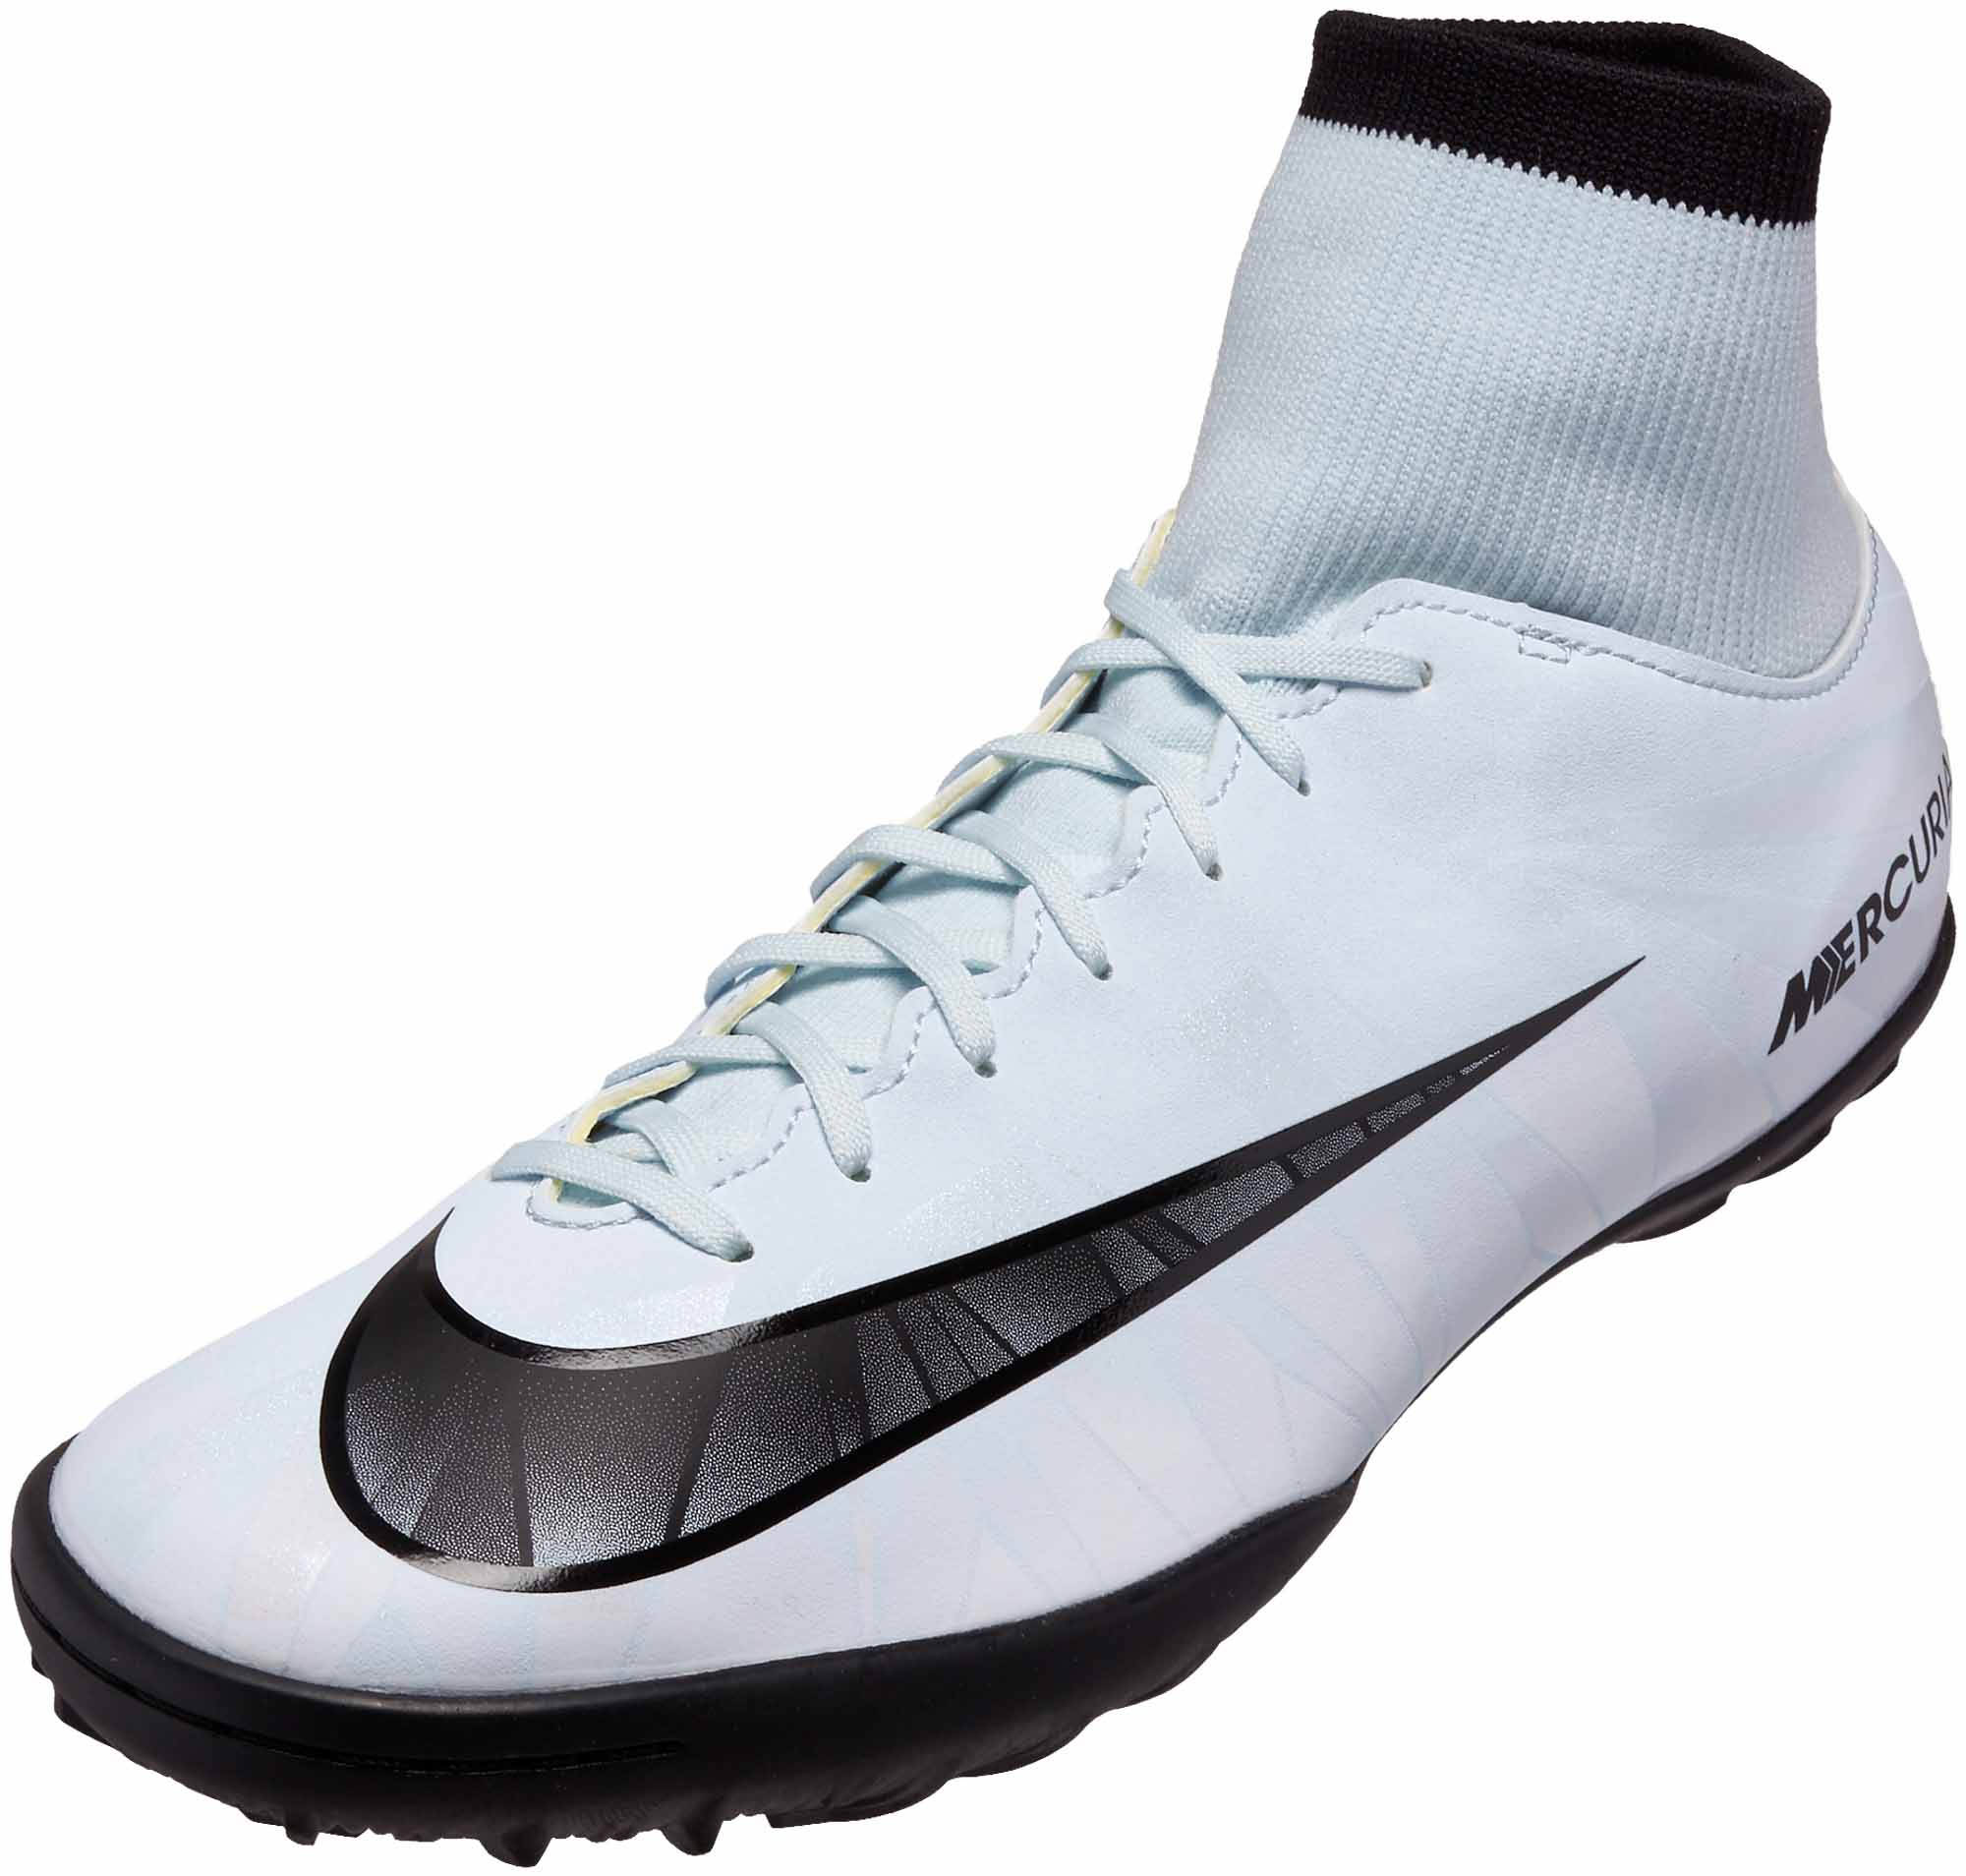 separation shoes 94348 08d71 Nike MercurialX Victory VI DF TF - CR7 - Blue Tint & Black ...